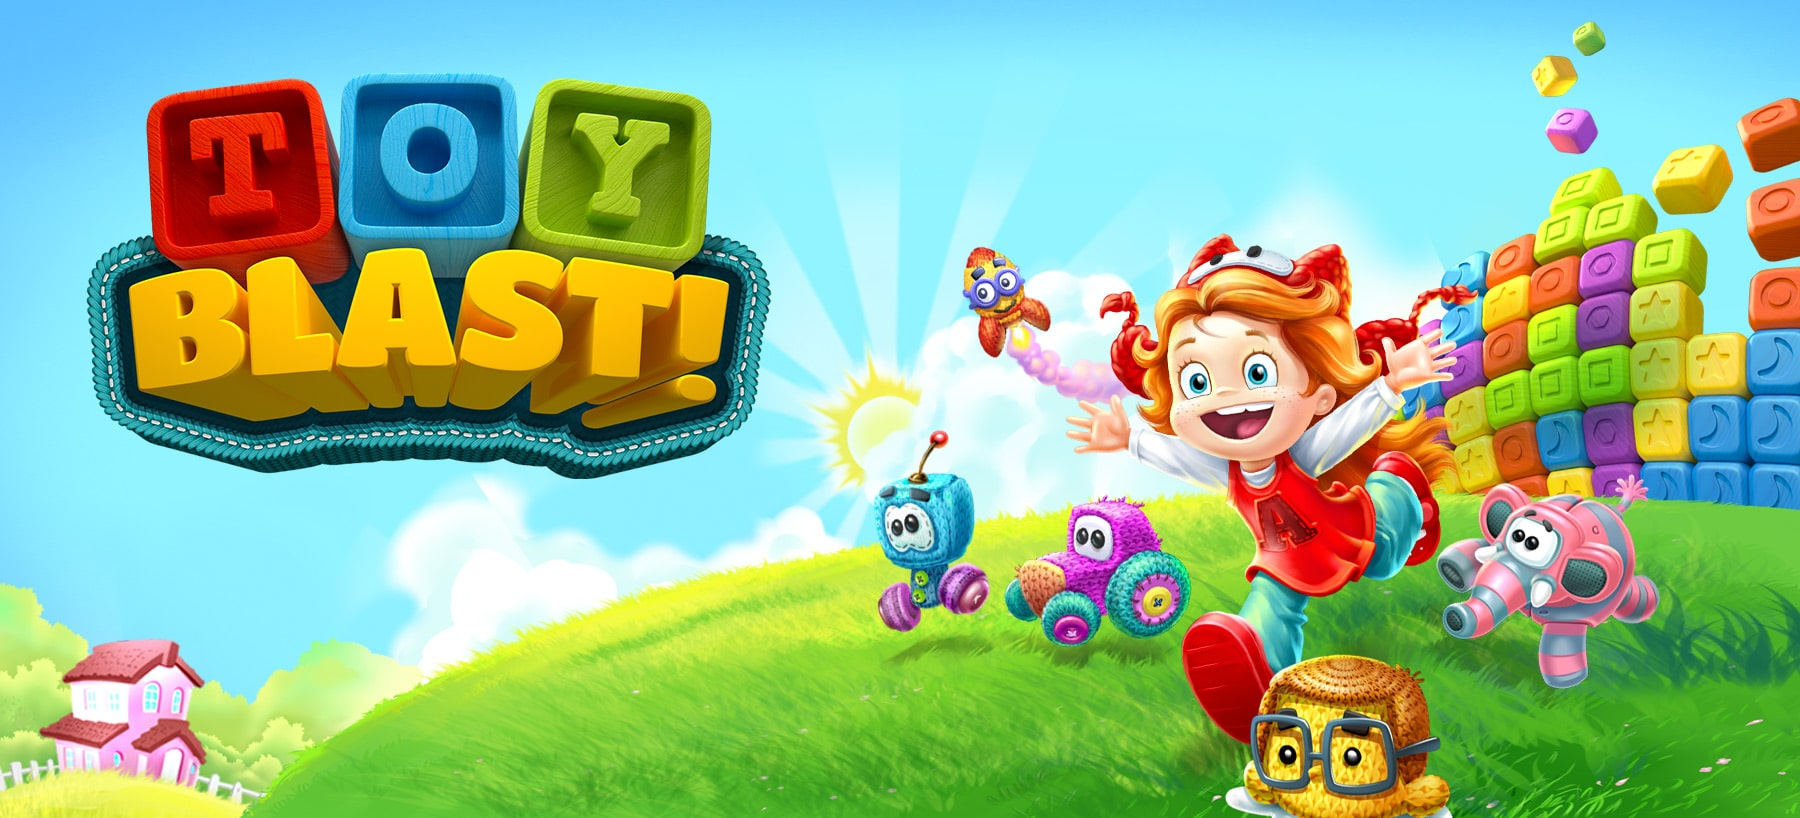 Toy Blast Hero Image